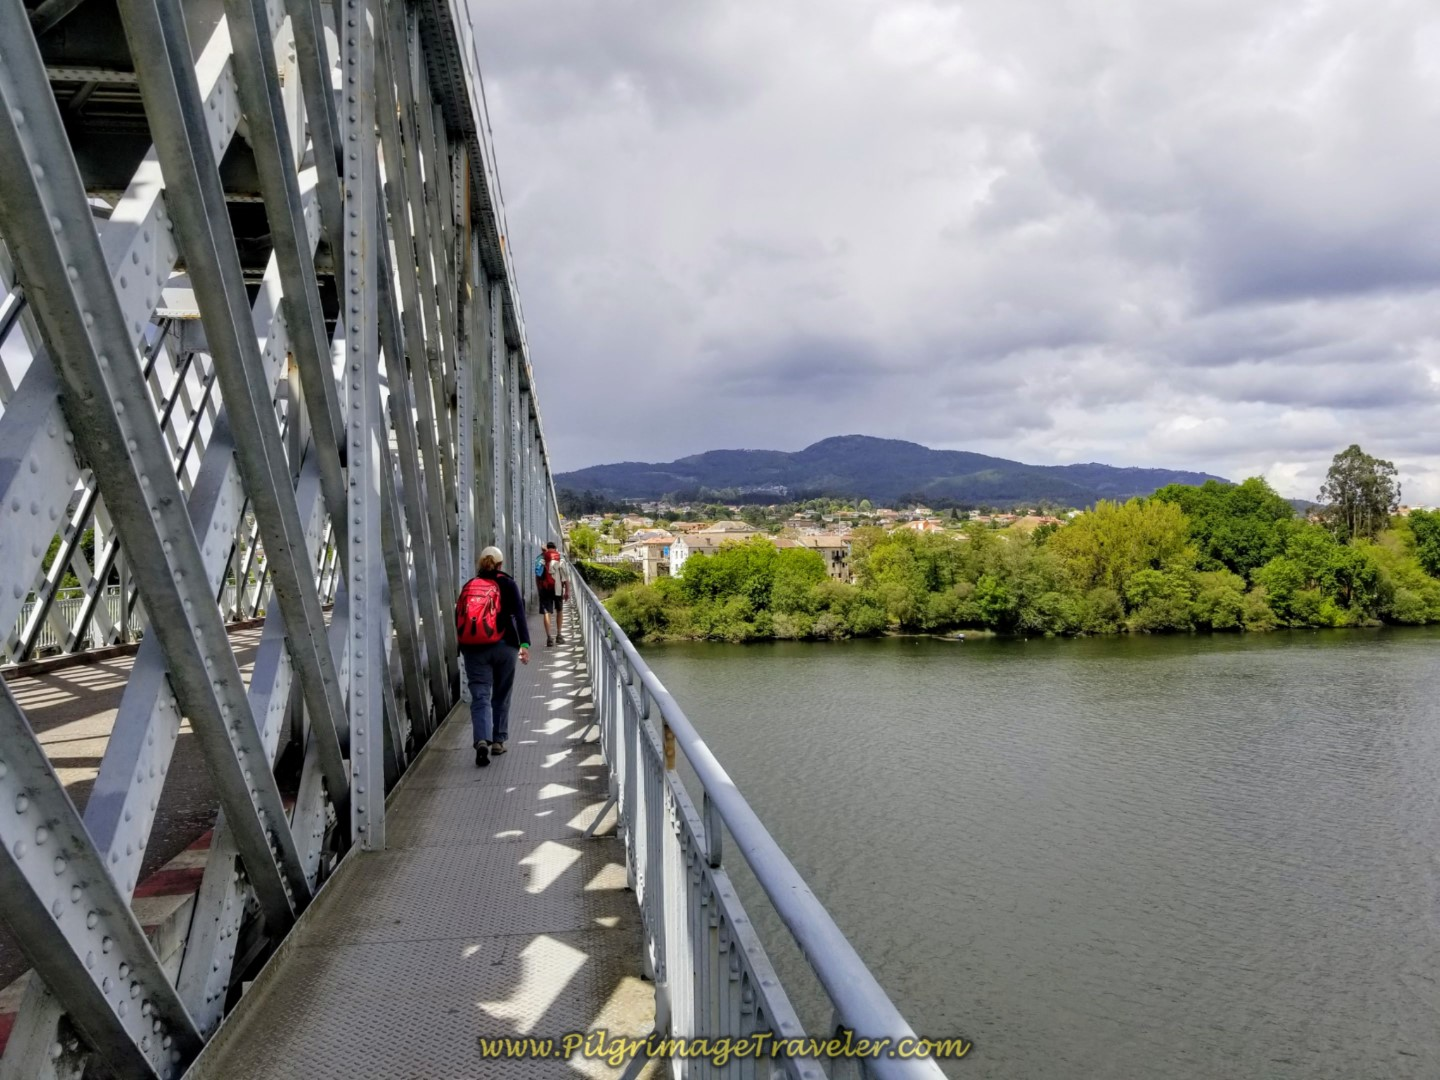 Pedestrian Walkway on the International Bridge from Portugal to Spain on day nineteen on the Central Route of the Portuguese Camino